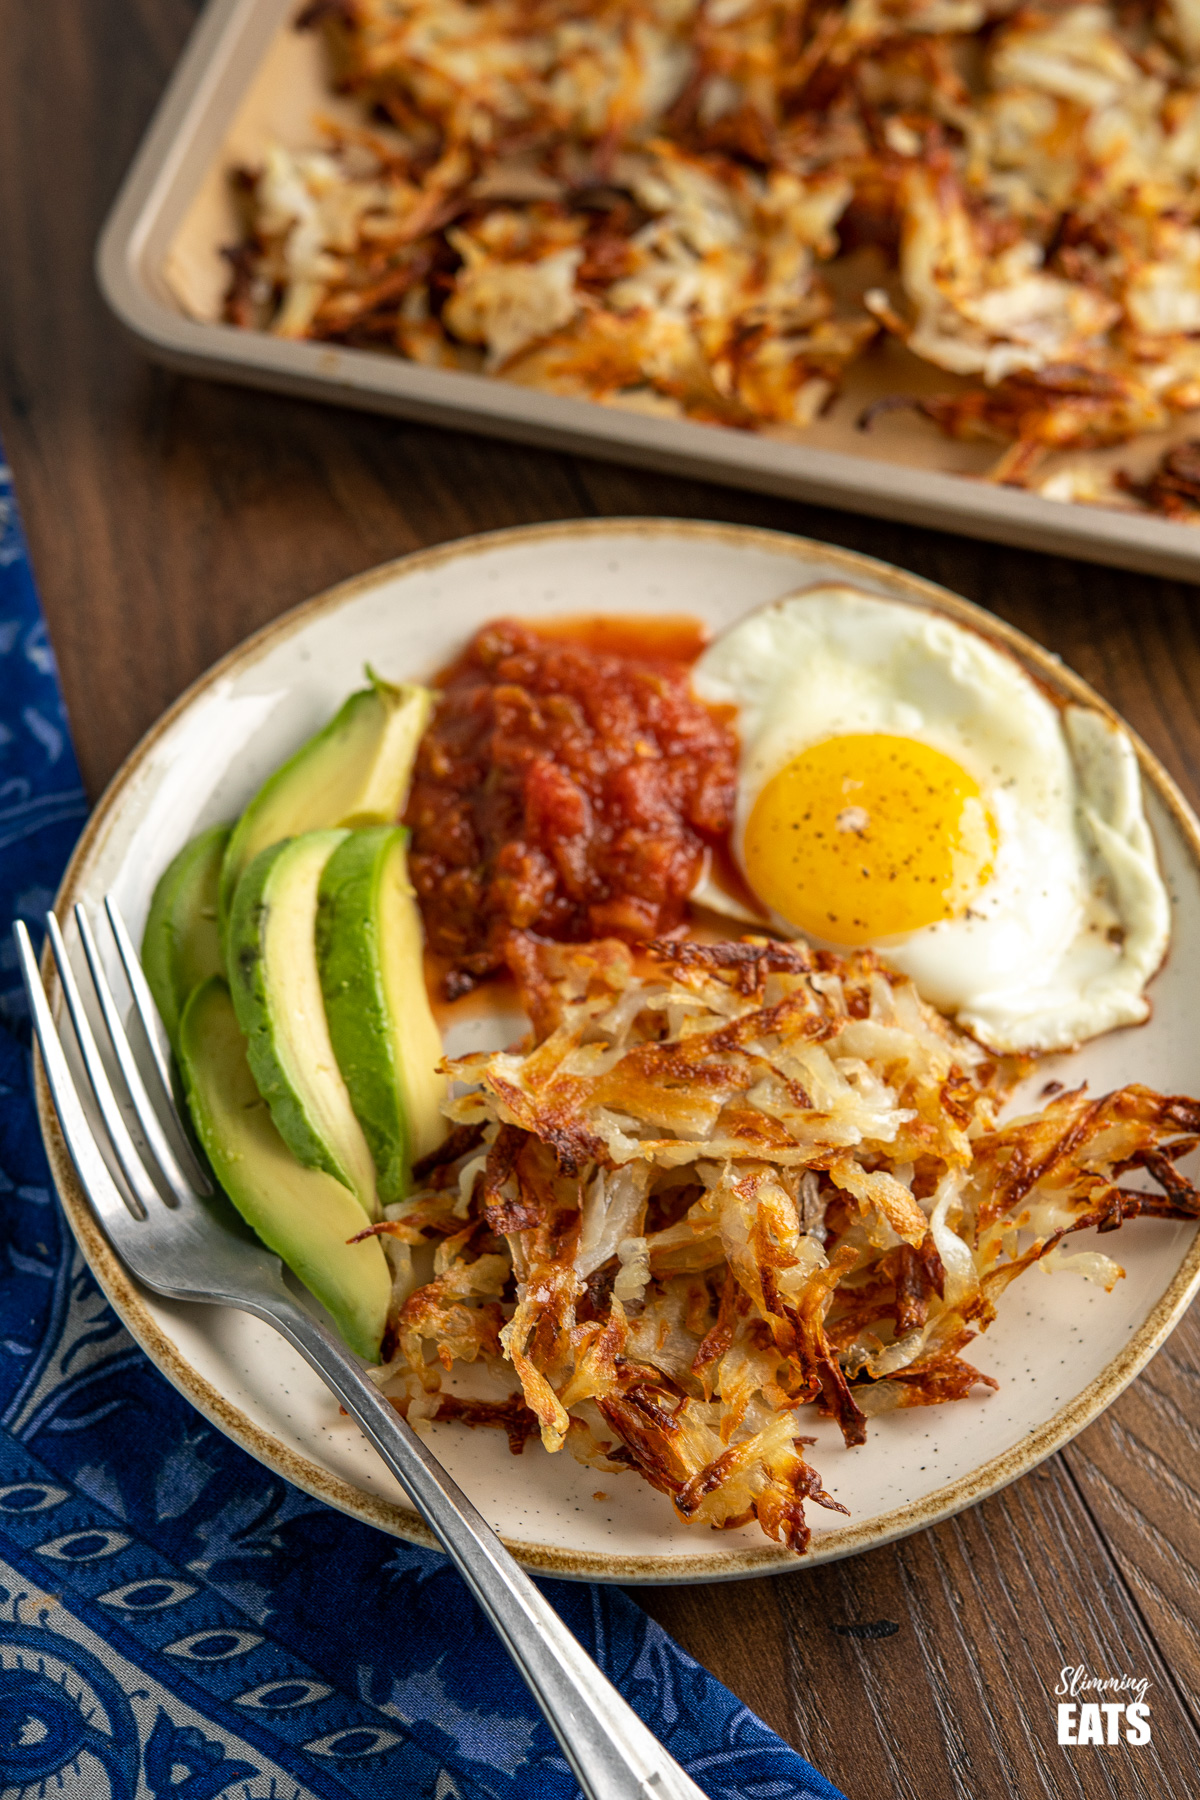 shredded potato hash browns on white plate with egg, salsa and avocado, fork placed to the side and tray of hash browns in the background